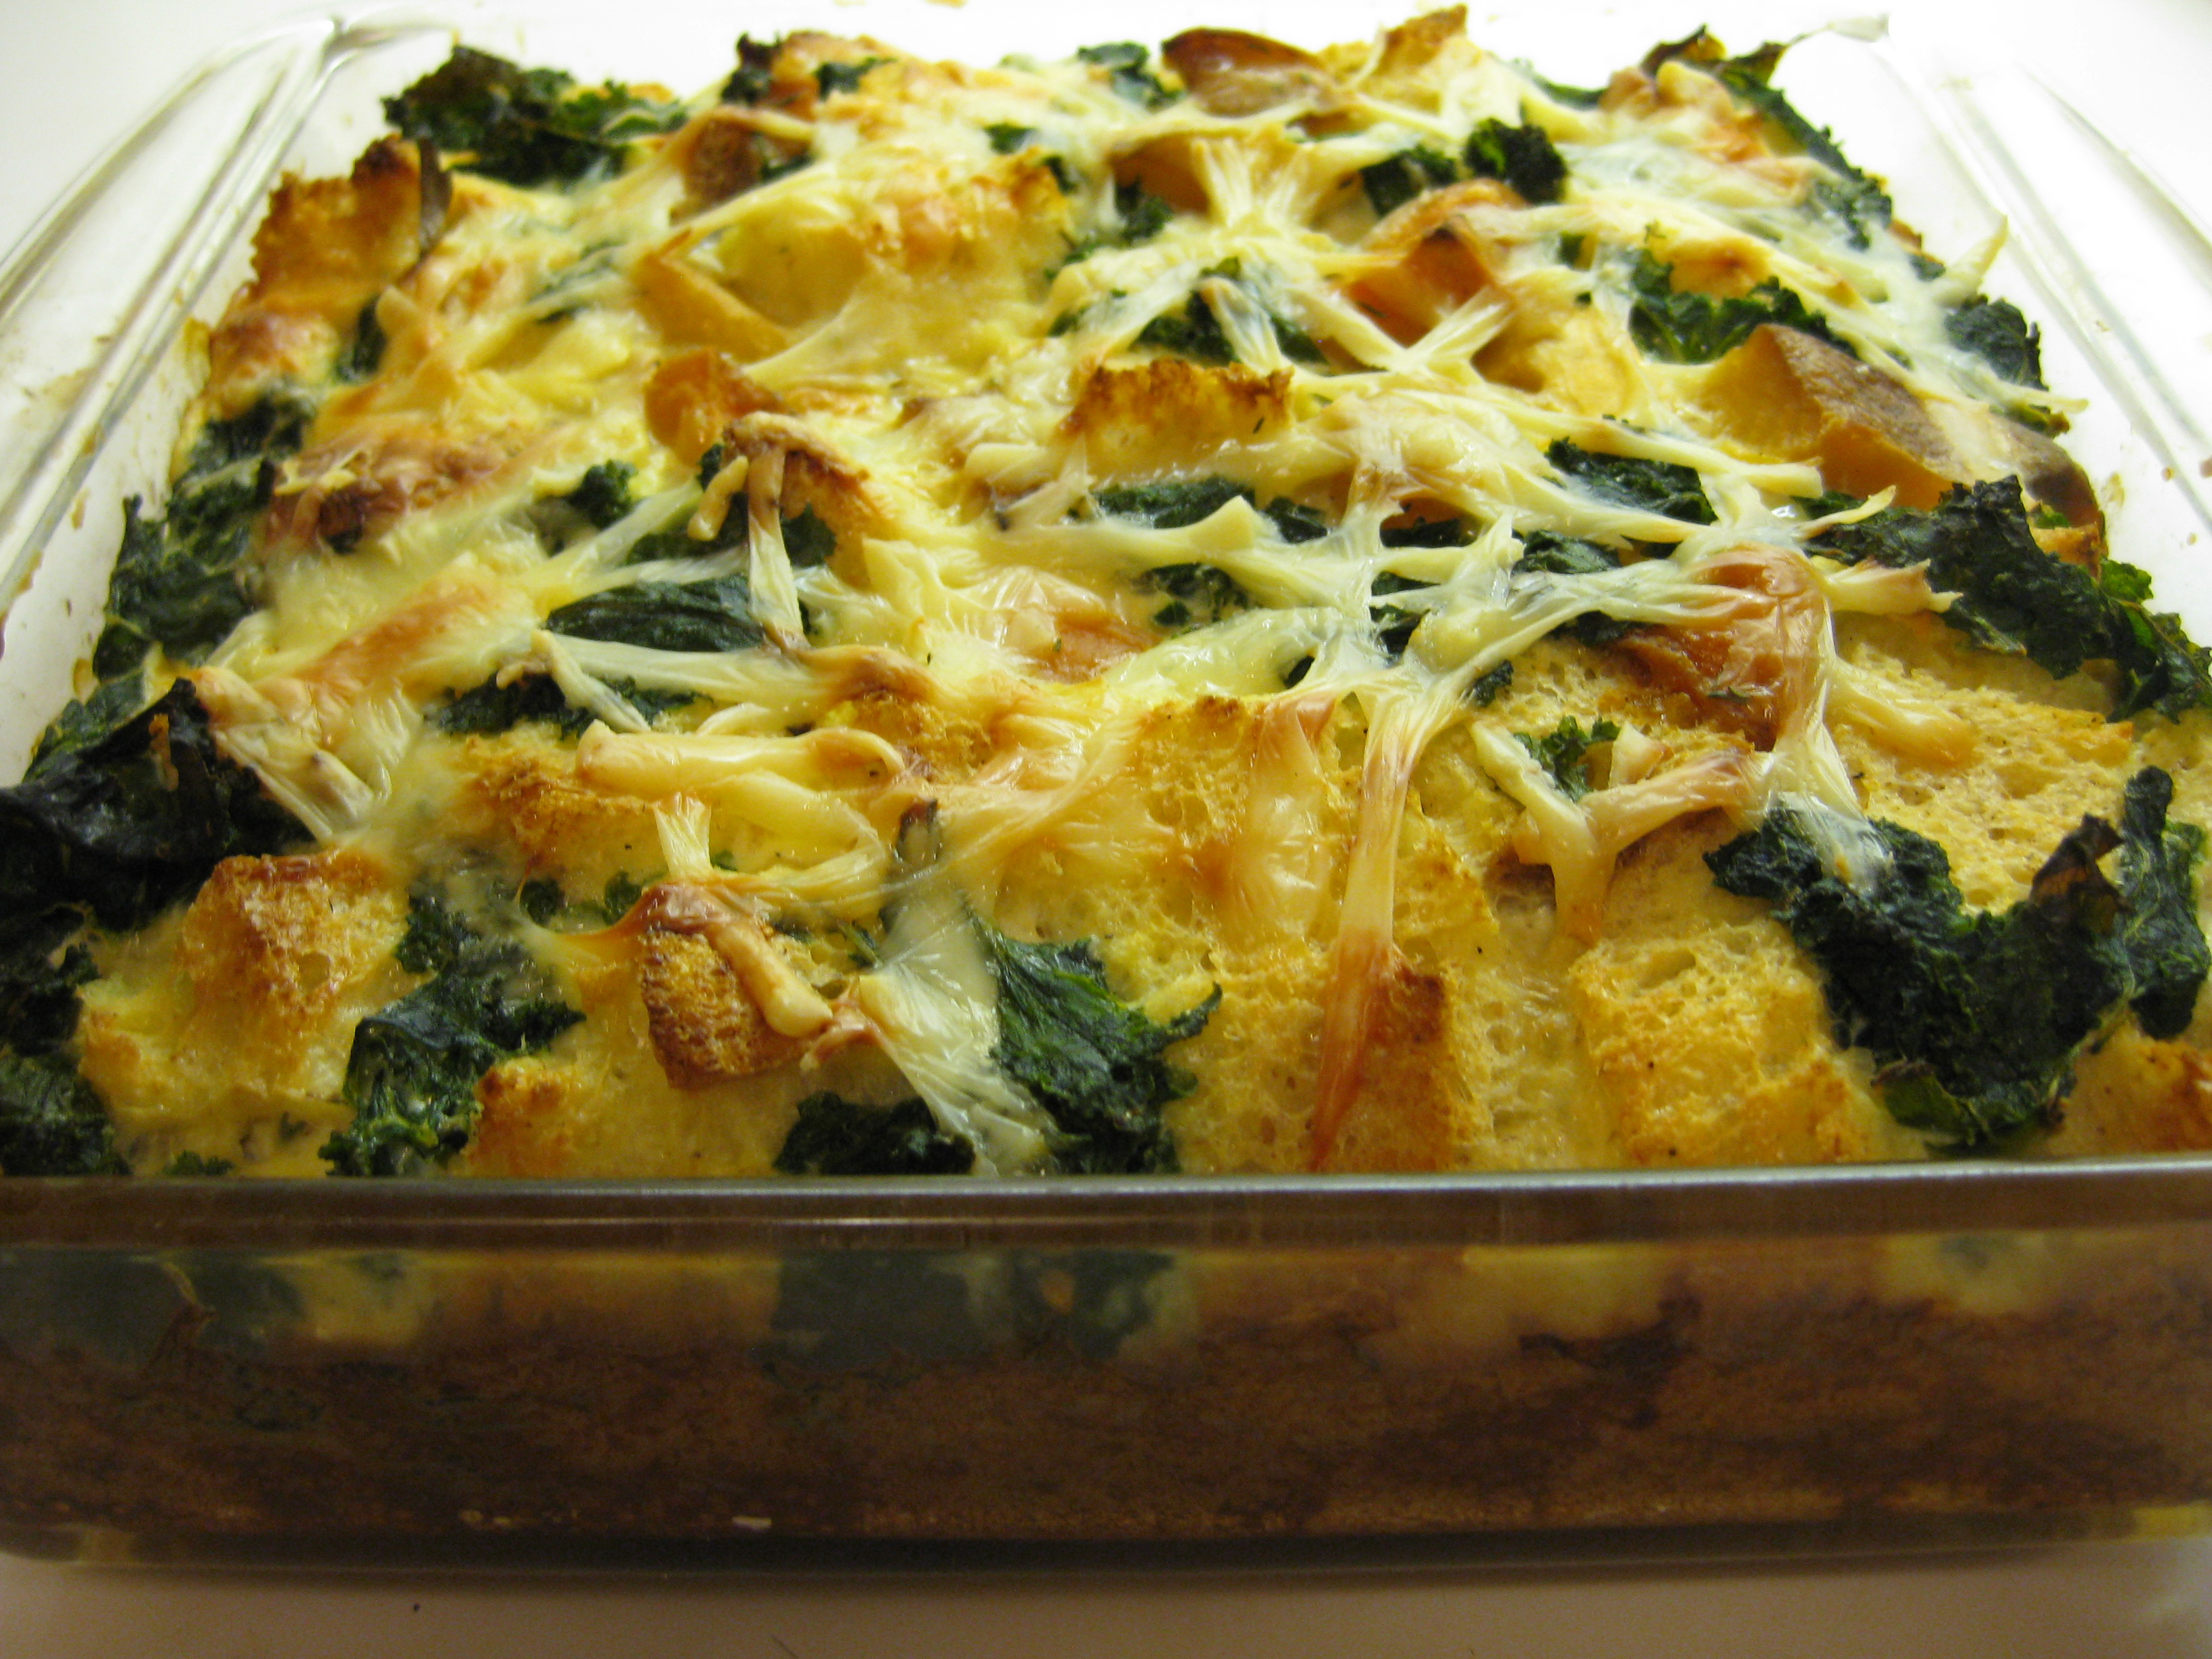 pudding savory bread pudding ham arugula bread pudding savory bread ...